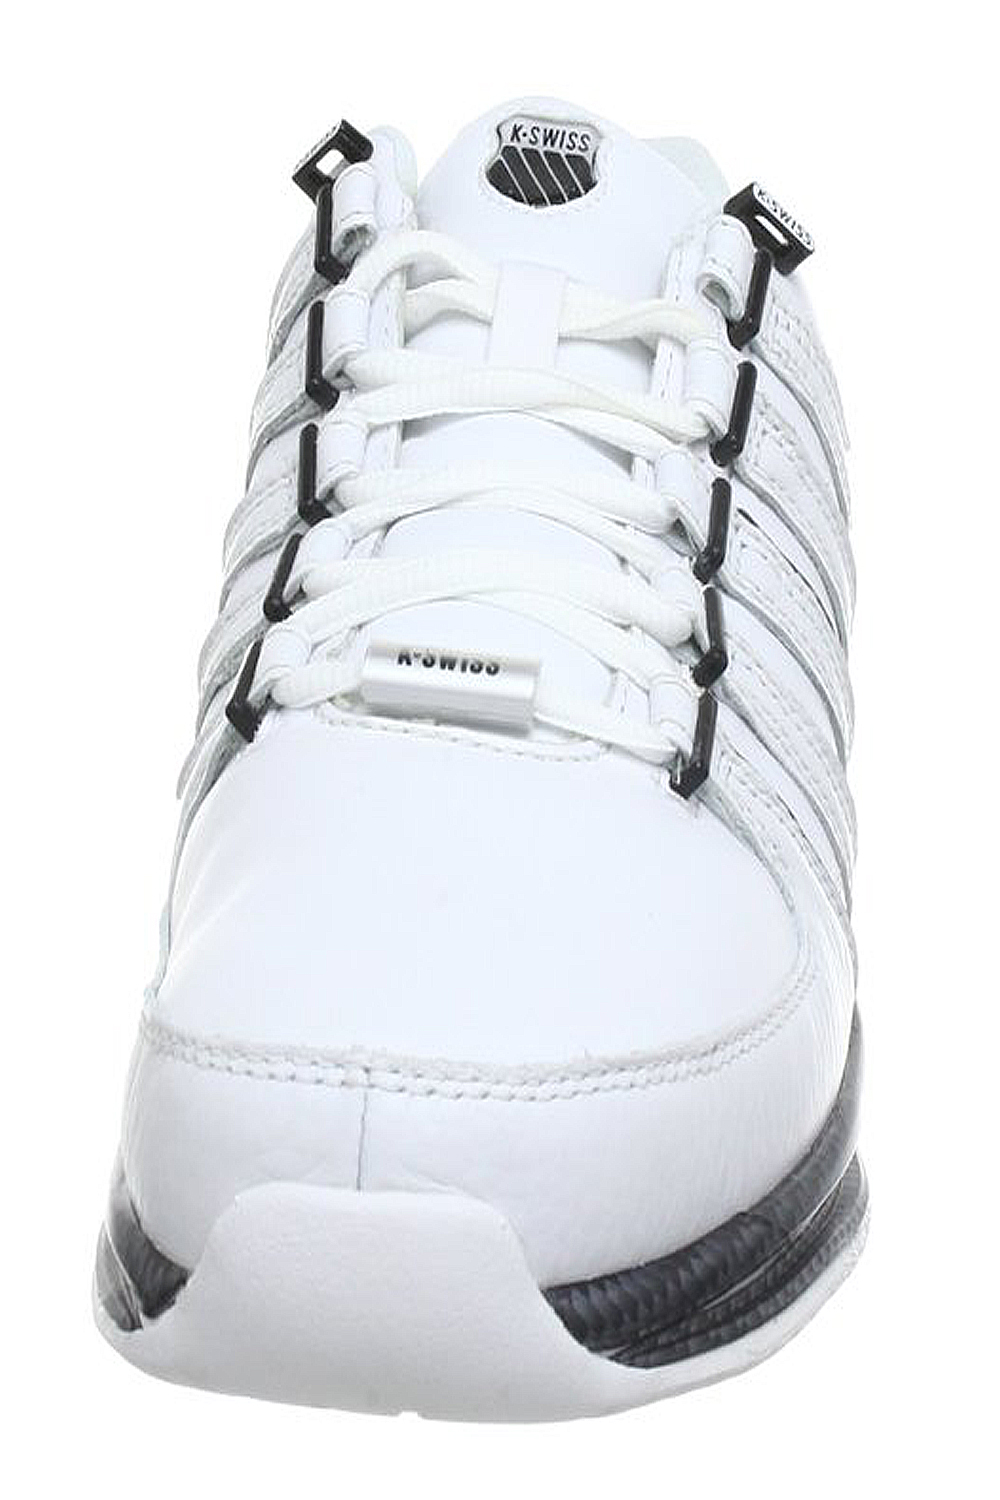 Uomo K Swiss Limited Iconic Edition Trainers Rinzler SP Iconic Limited Stripes Leder Schuhes 49d4a1